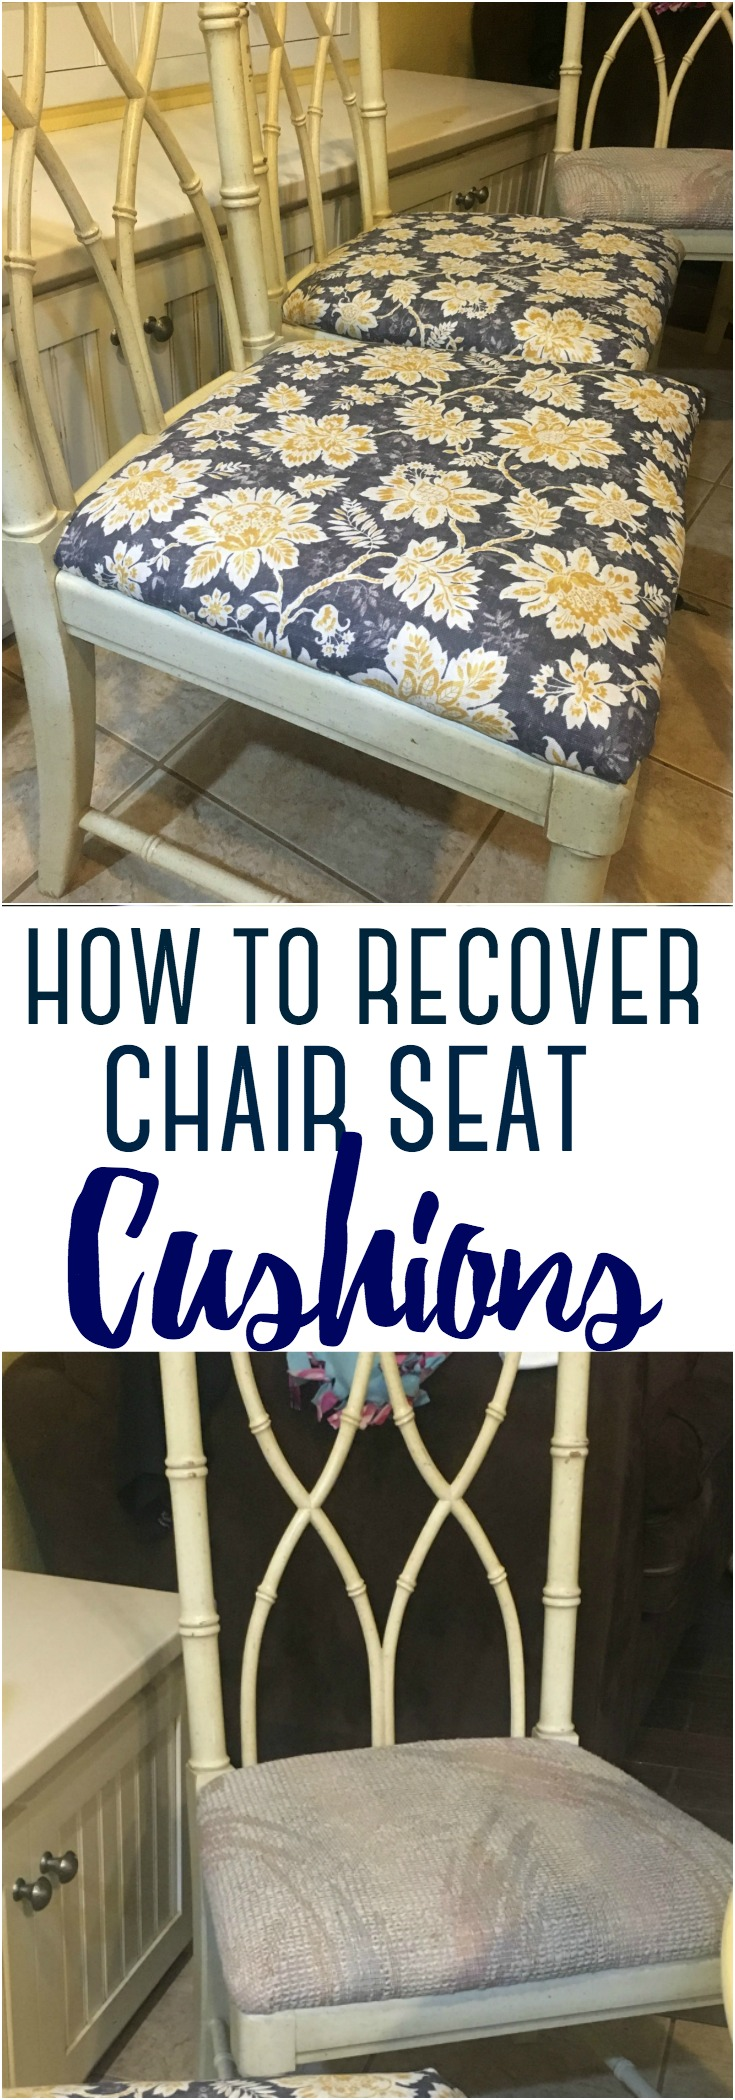 With a little DIY know-how, and a few simple supplies and tools, you can transform ugly dining chairs into beautiful pieces. Here's how to recover chair seat cushions yourself.